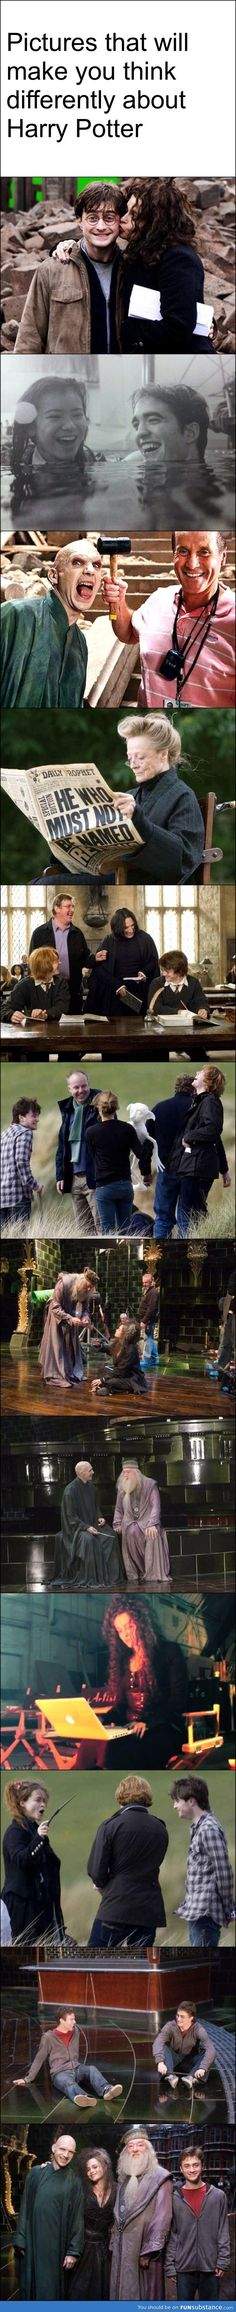 Harry potter world .. pictures that make you think differently about Harry Potter